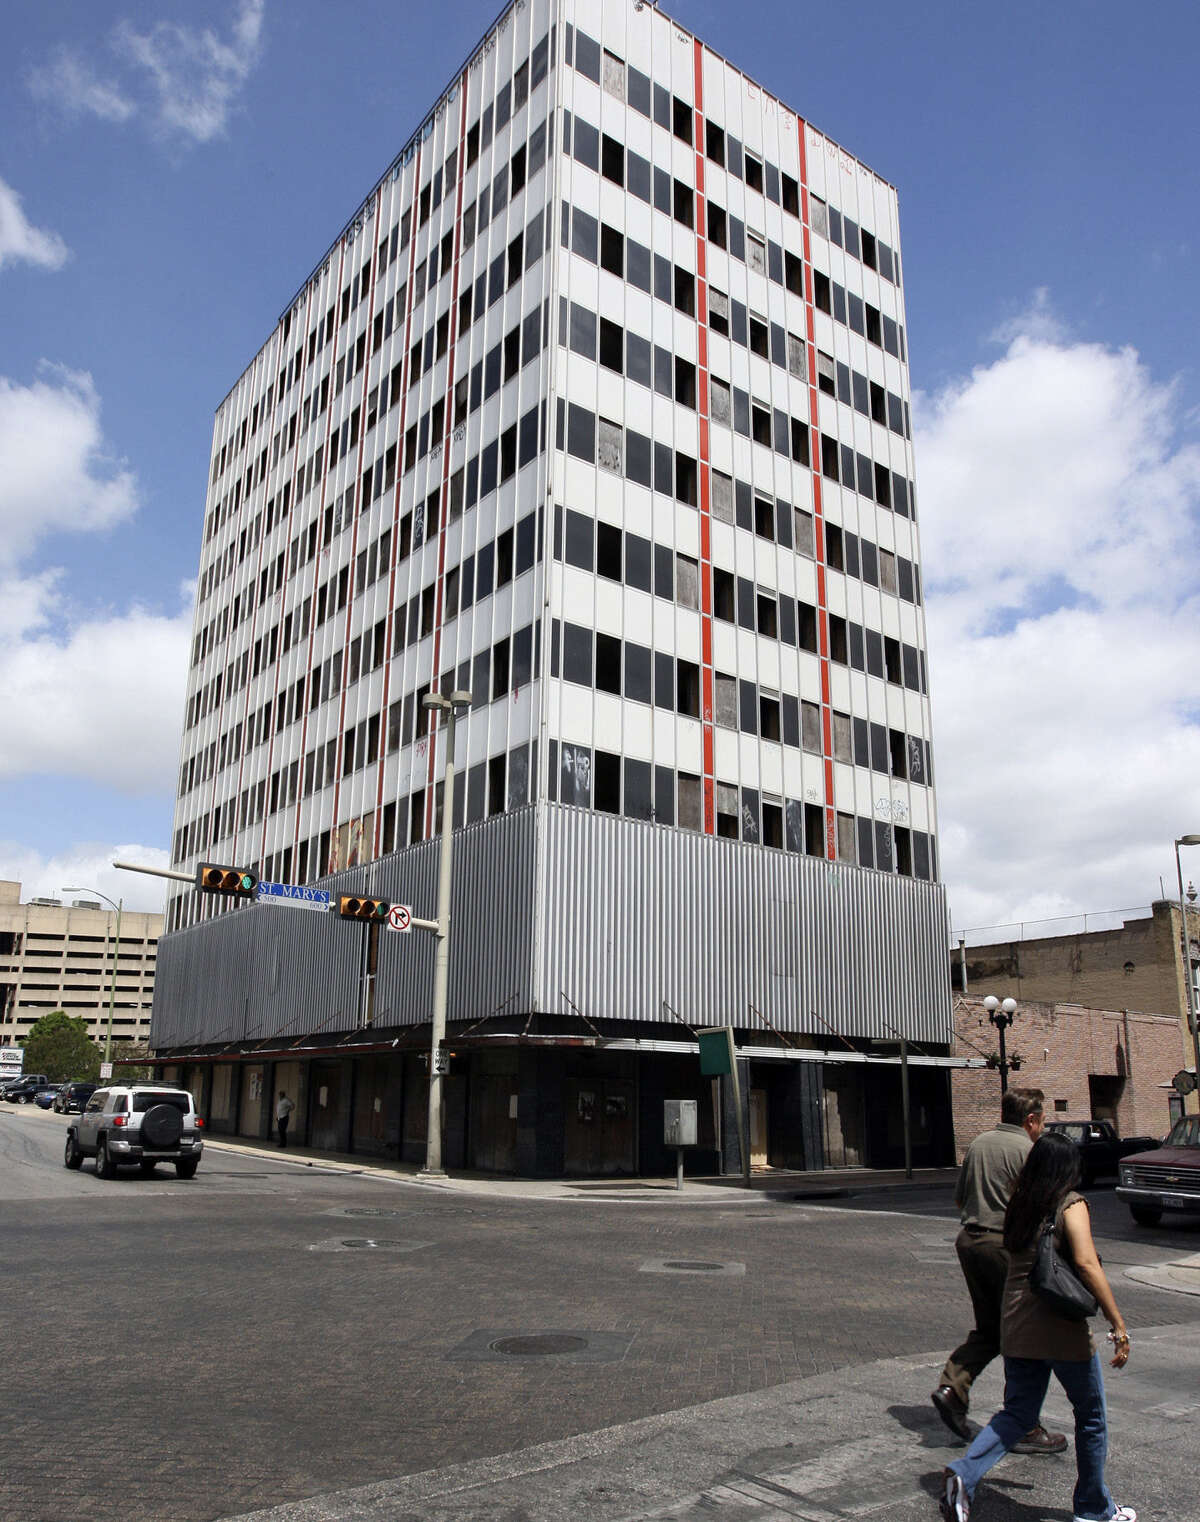 The long-vacant Hedrick Building is owned by B.P. Agrawal, an economics professor at SAC. Public coercion, not city coercion, may offer the right incentive to rehab the building.